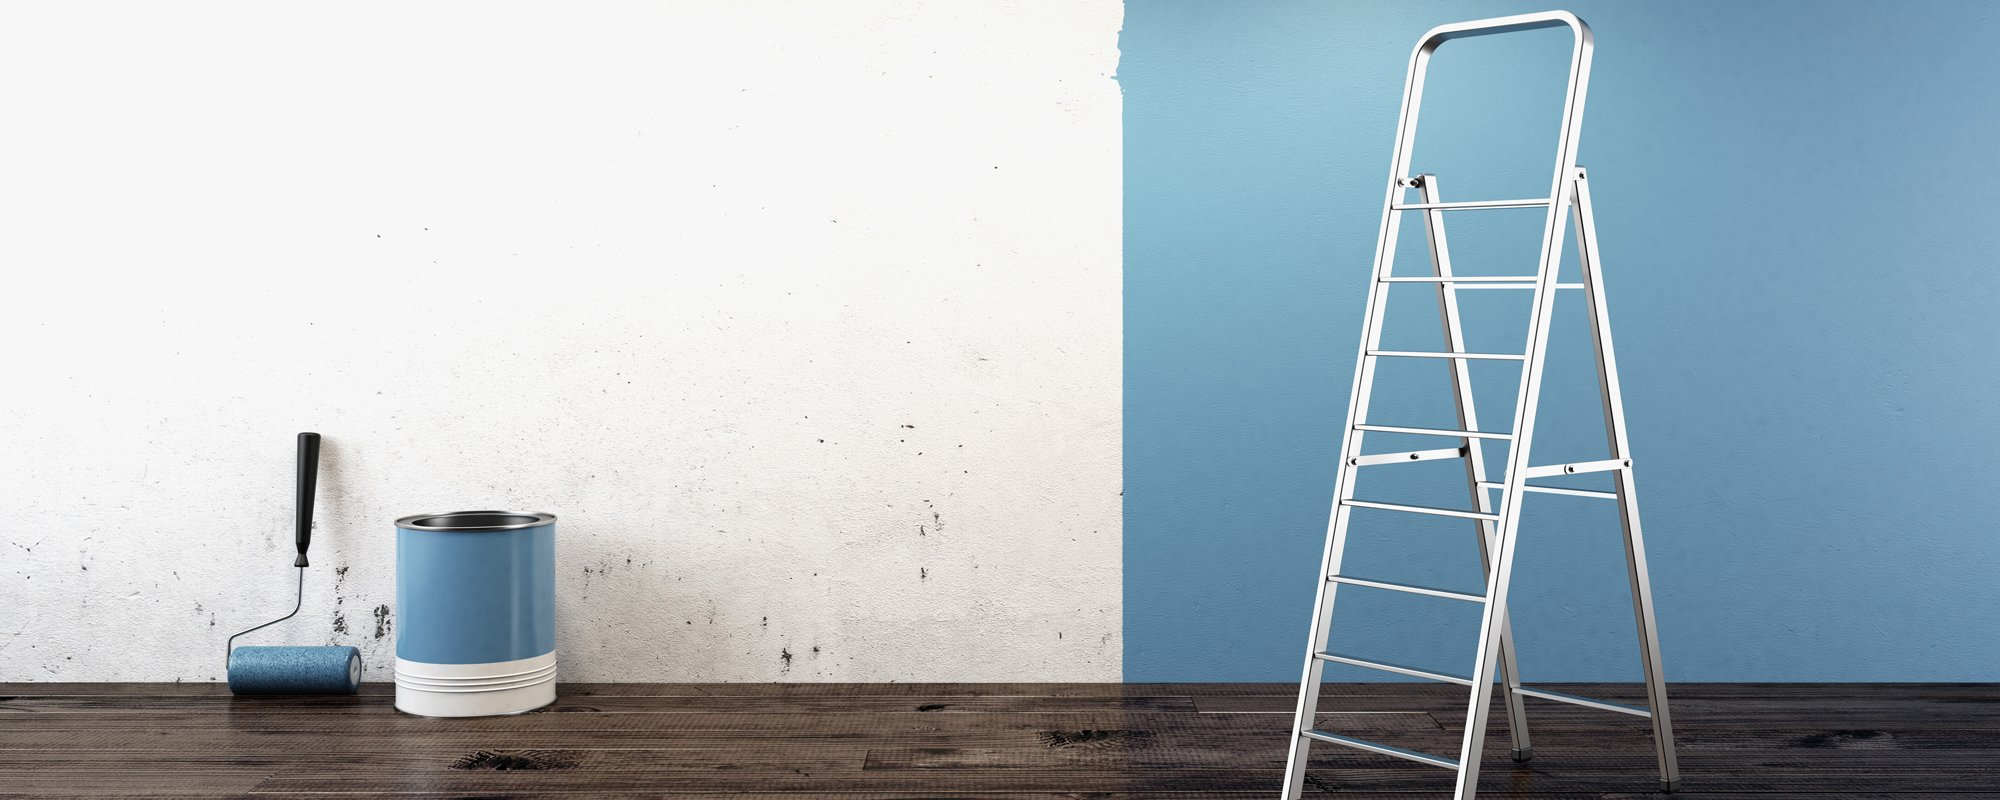 Wall being painted by expert